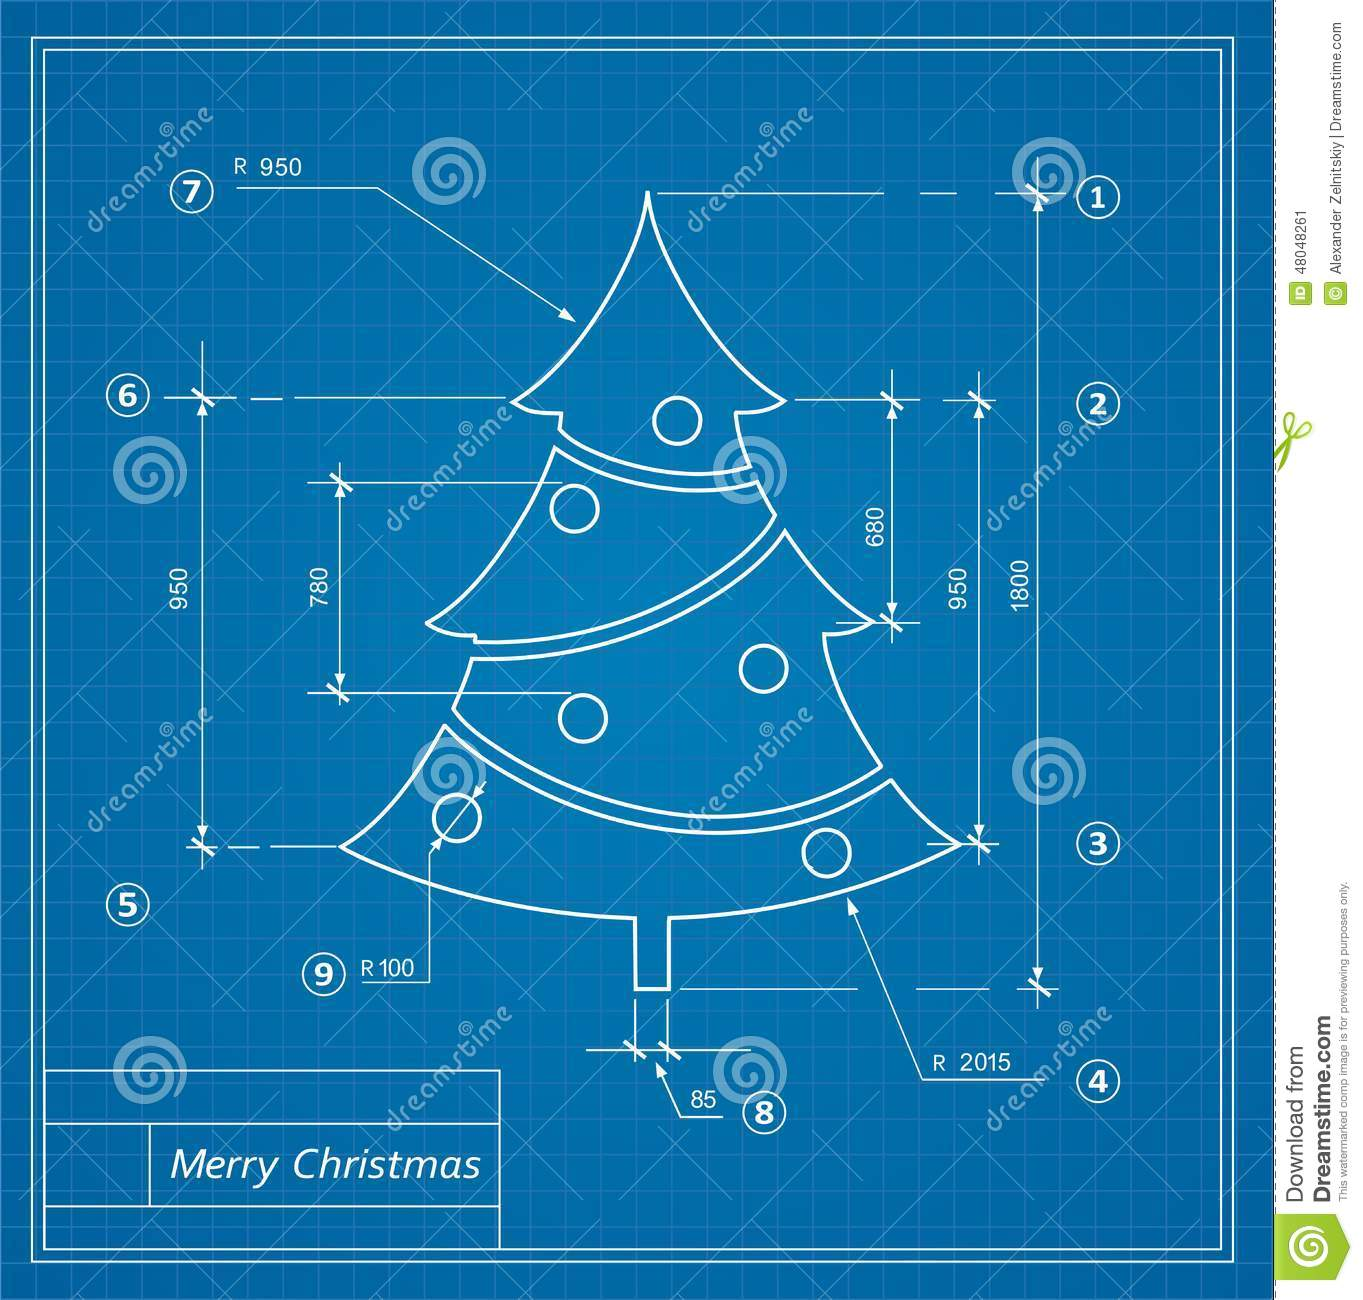 Christmas Blueprints Stock Vector Image Of Holiday 48048261